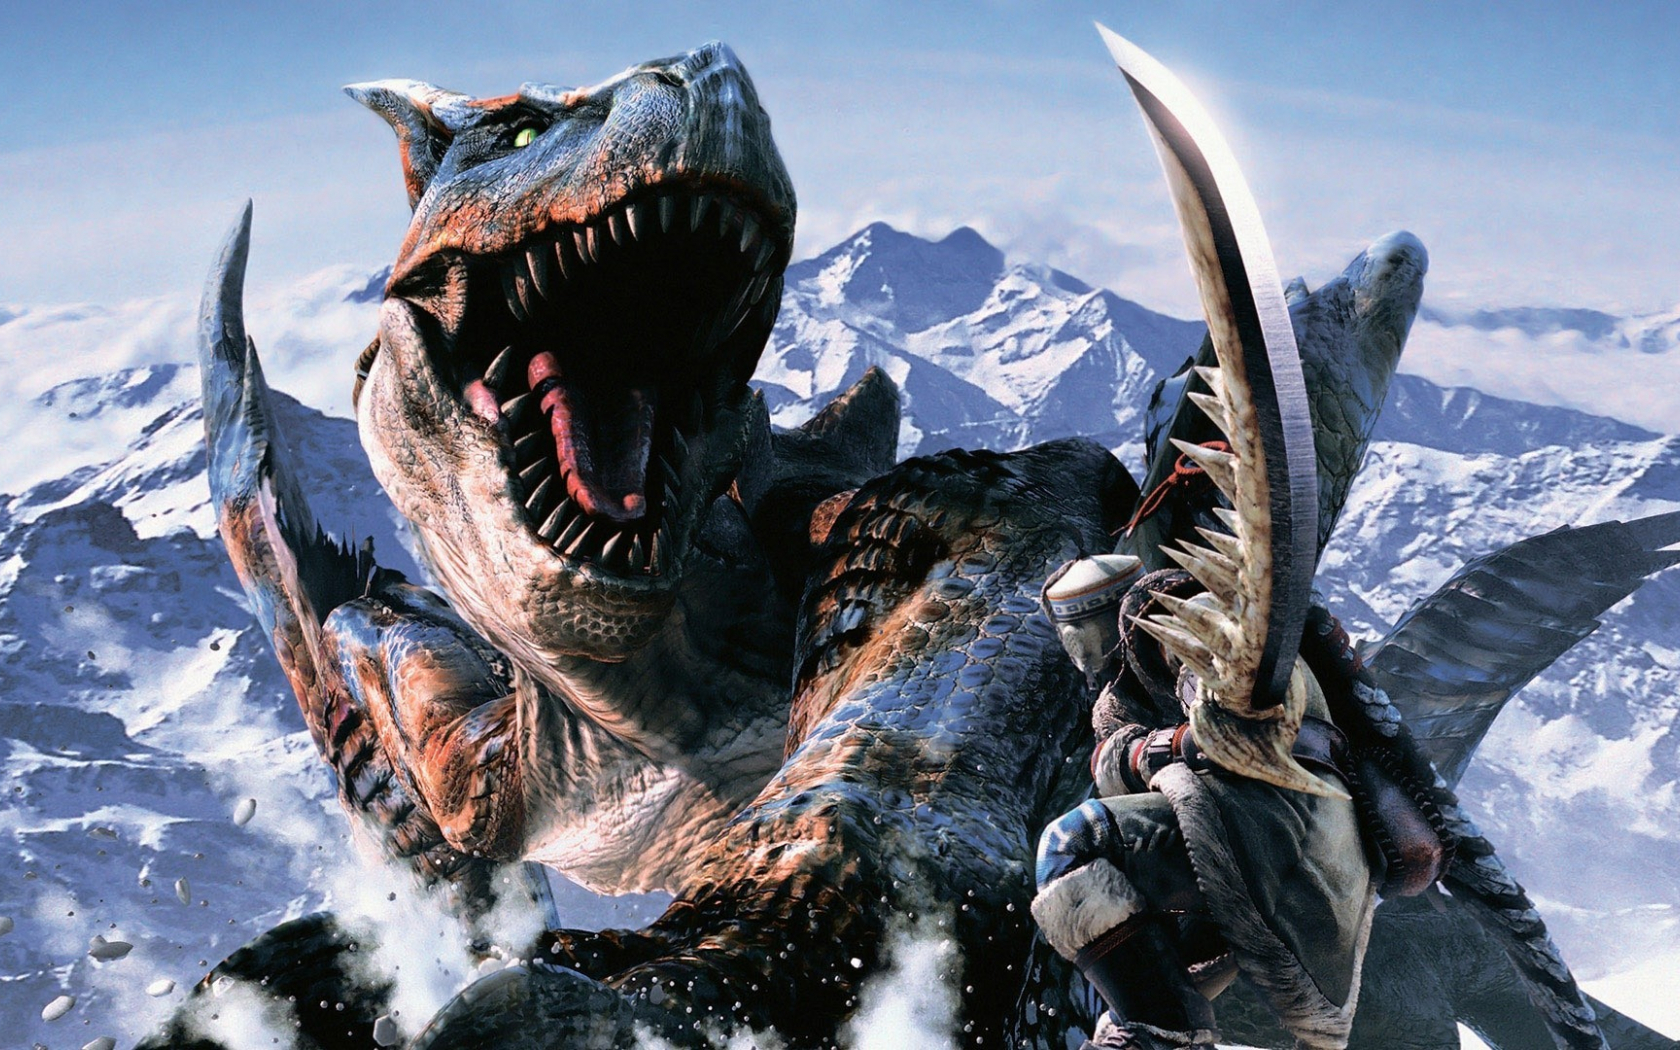 Free Download Monster Hunter 4 Wallpaper 9371 1920x1080 For Your